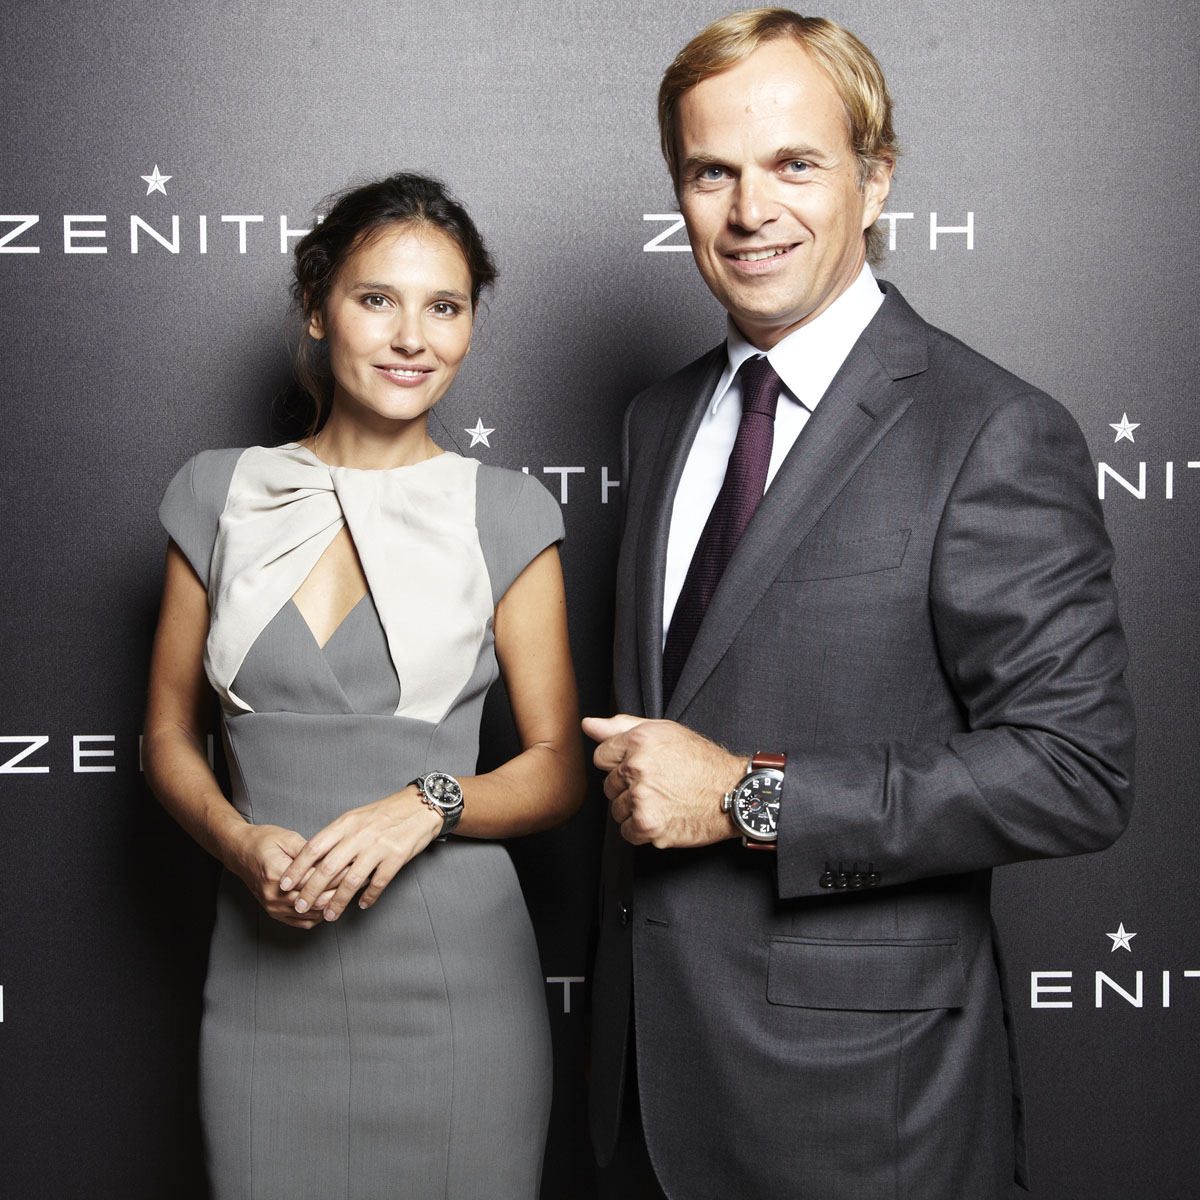 The Watch Quote: Photo - Zenith, a tribute to the pioneers of aviation